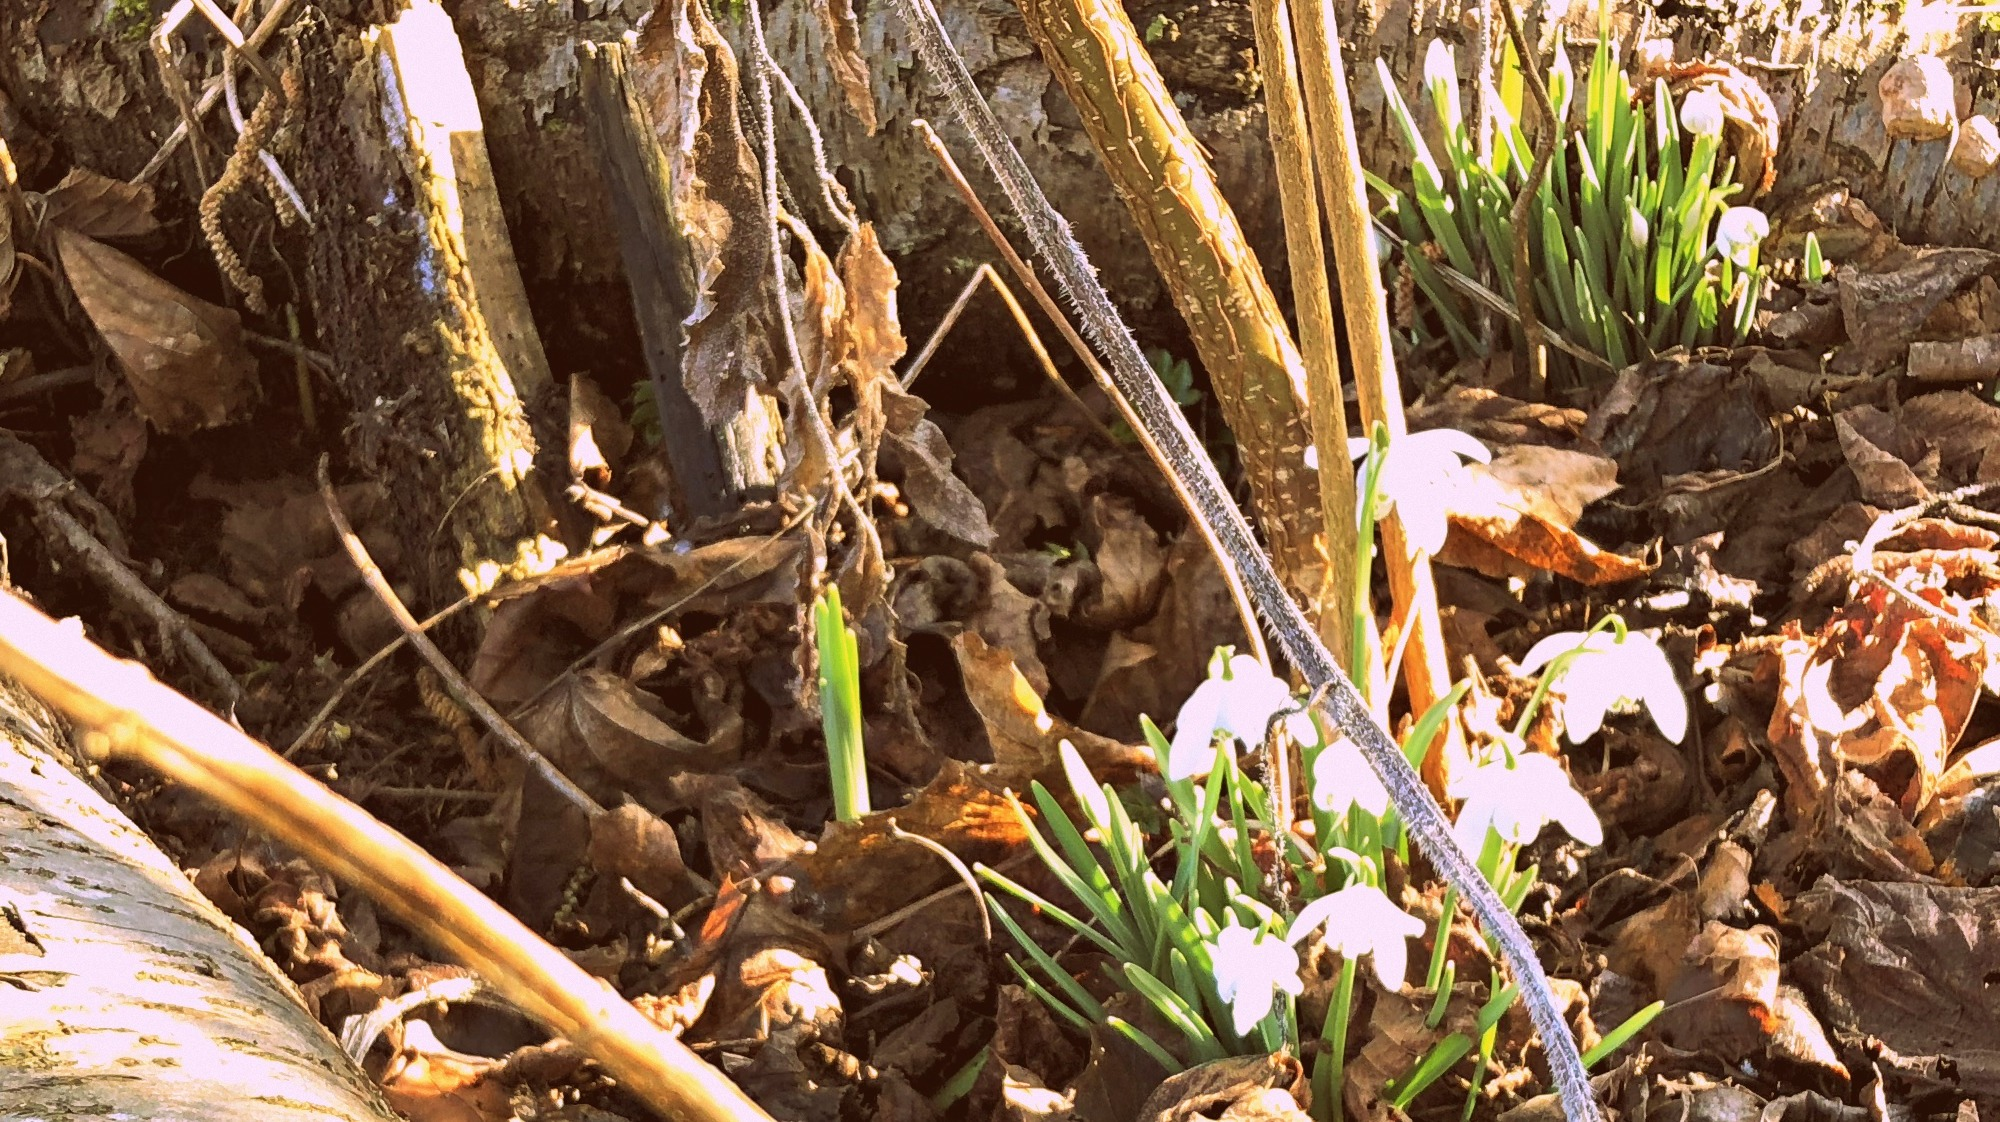 A close up of a woodland bed with tiny, bright which snowdrops peeping through a pile of brown and orange crunchy leaves. A thick, silver barked log lies across the front of the picture.